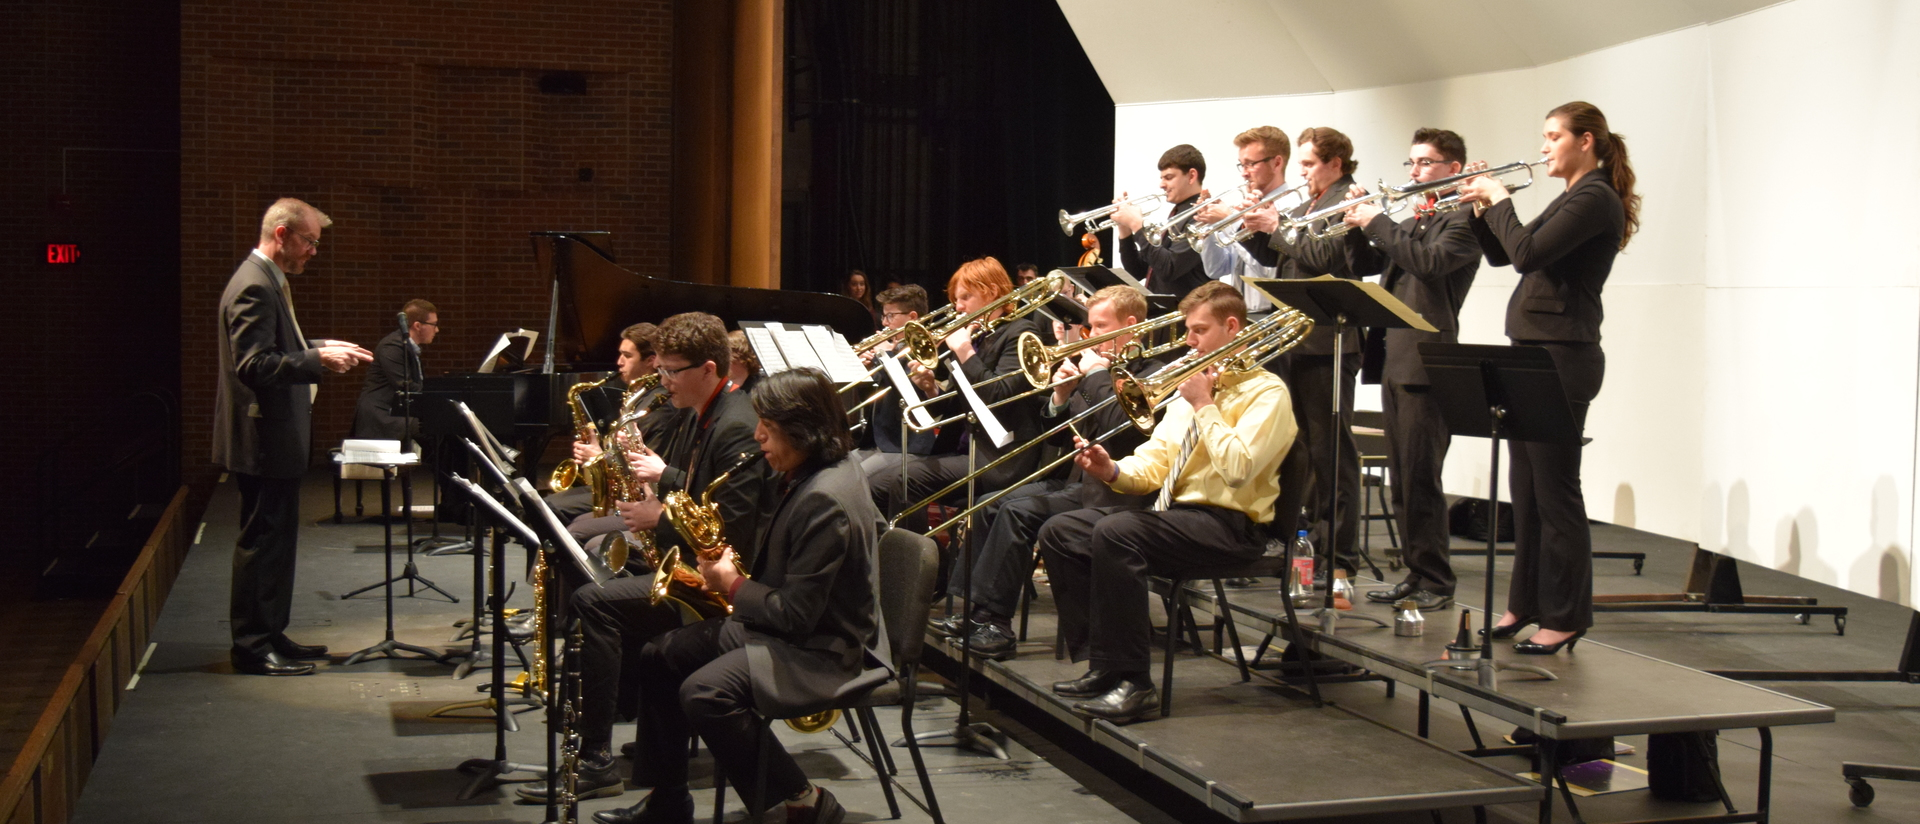 Jazz Ensemble III on Stage